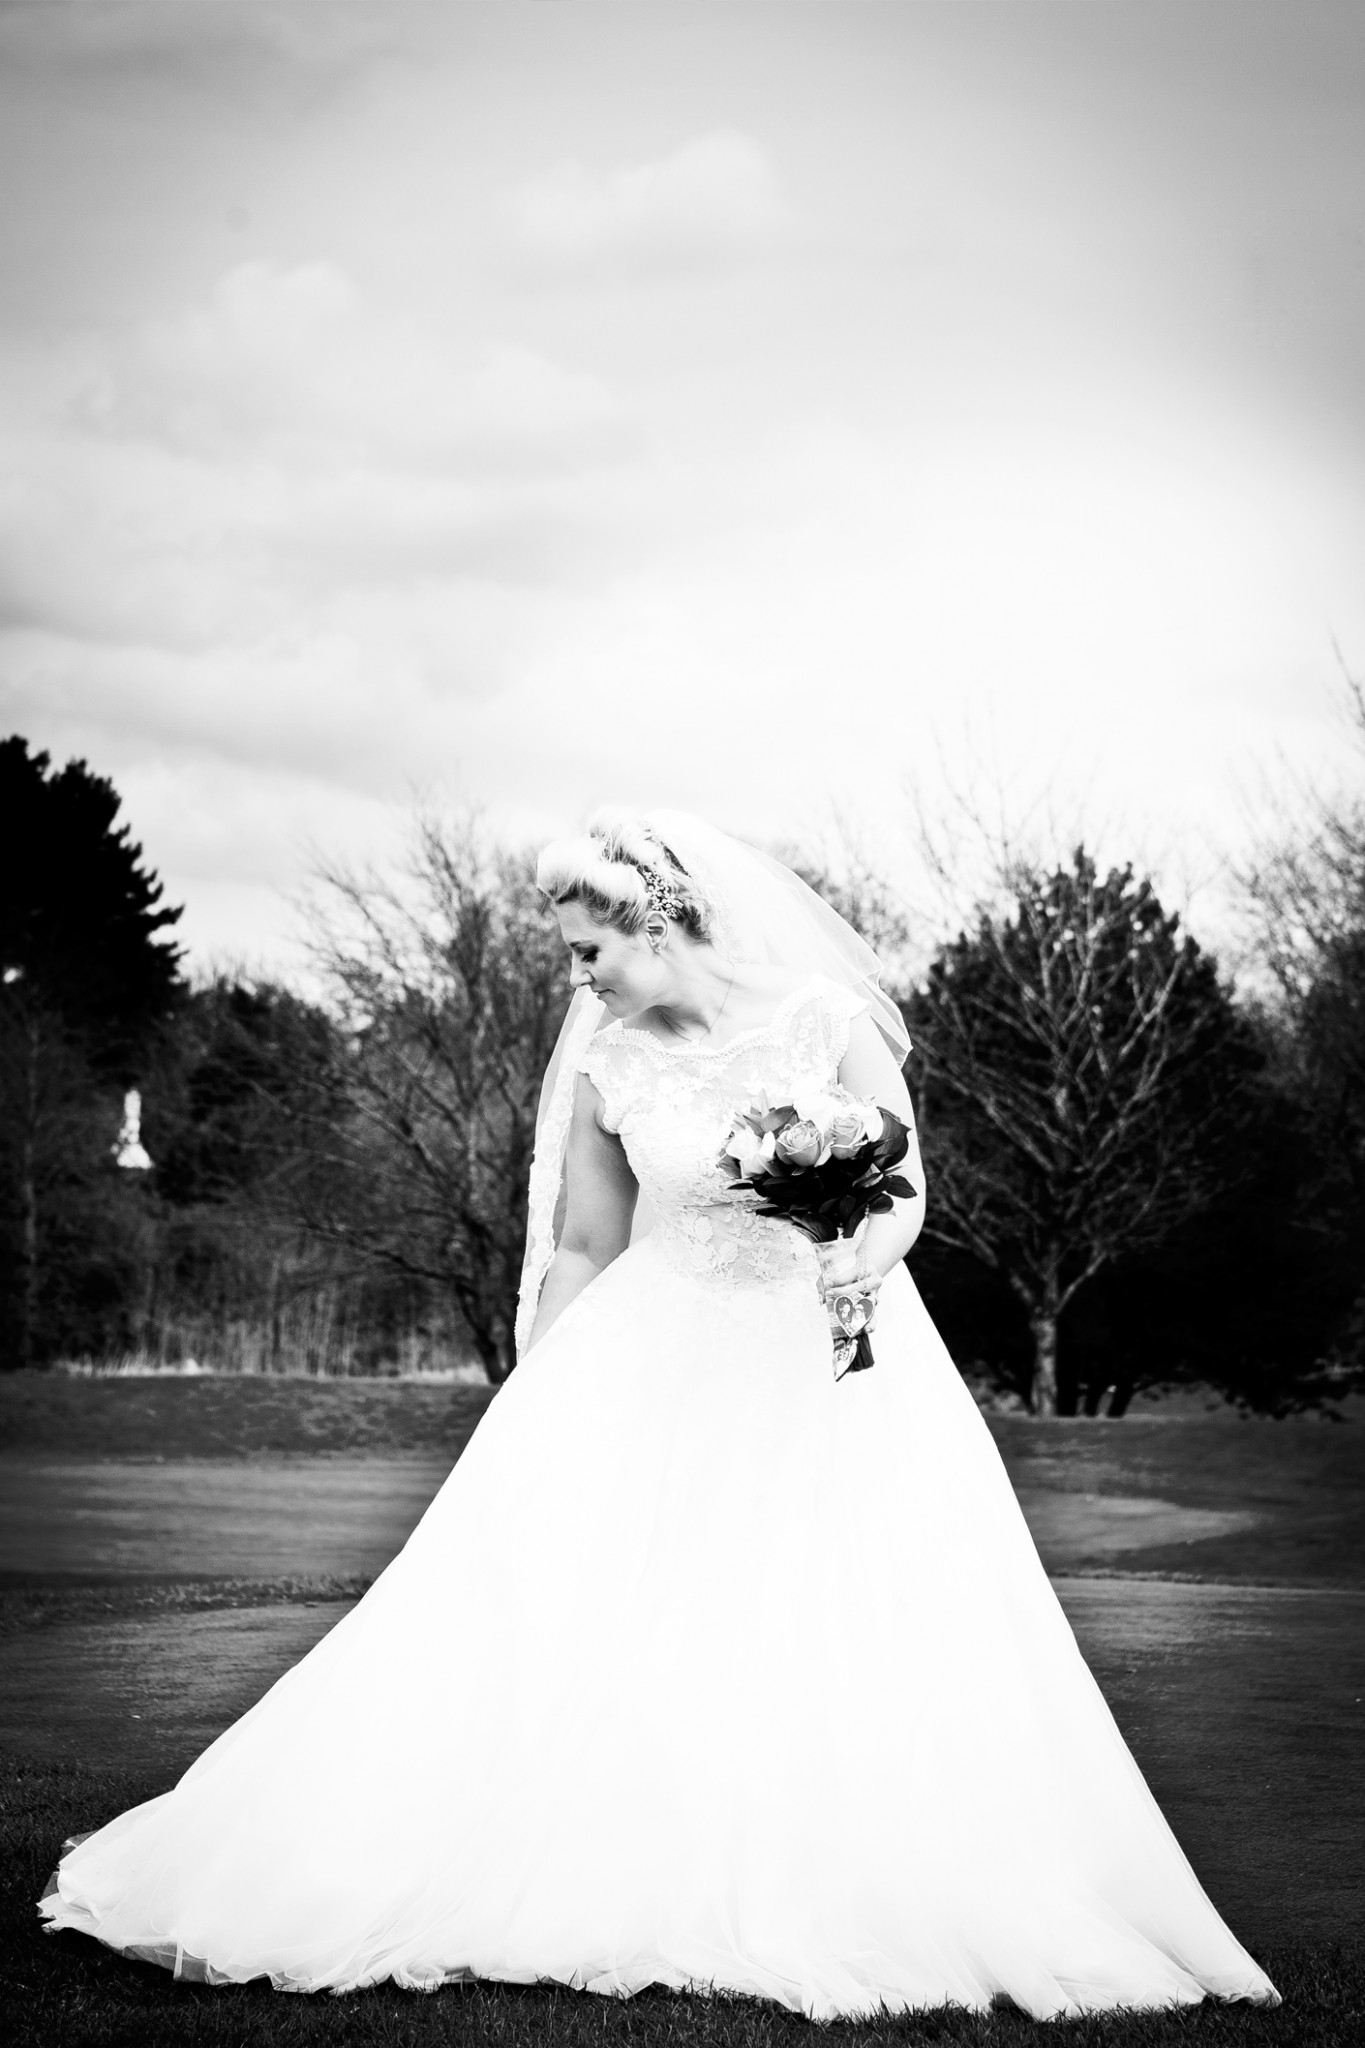 wedding-photographer-at-the-tytherington-club-in-macclesfield-cheshire